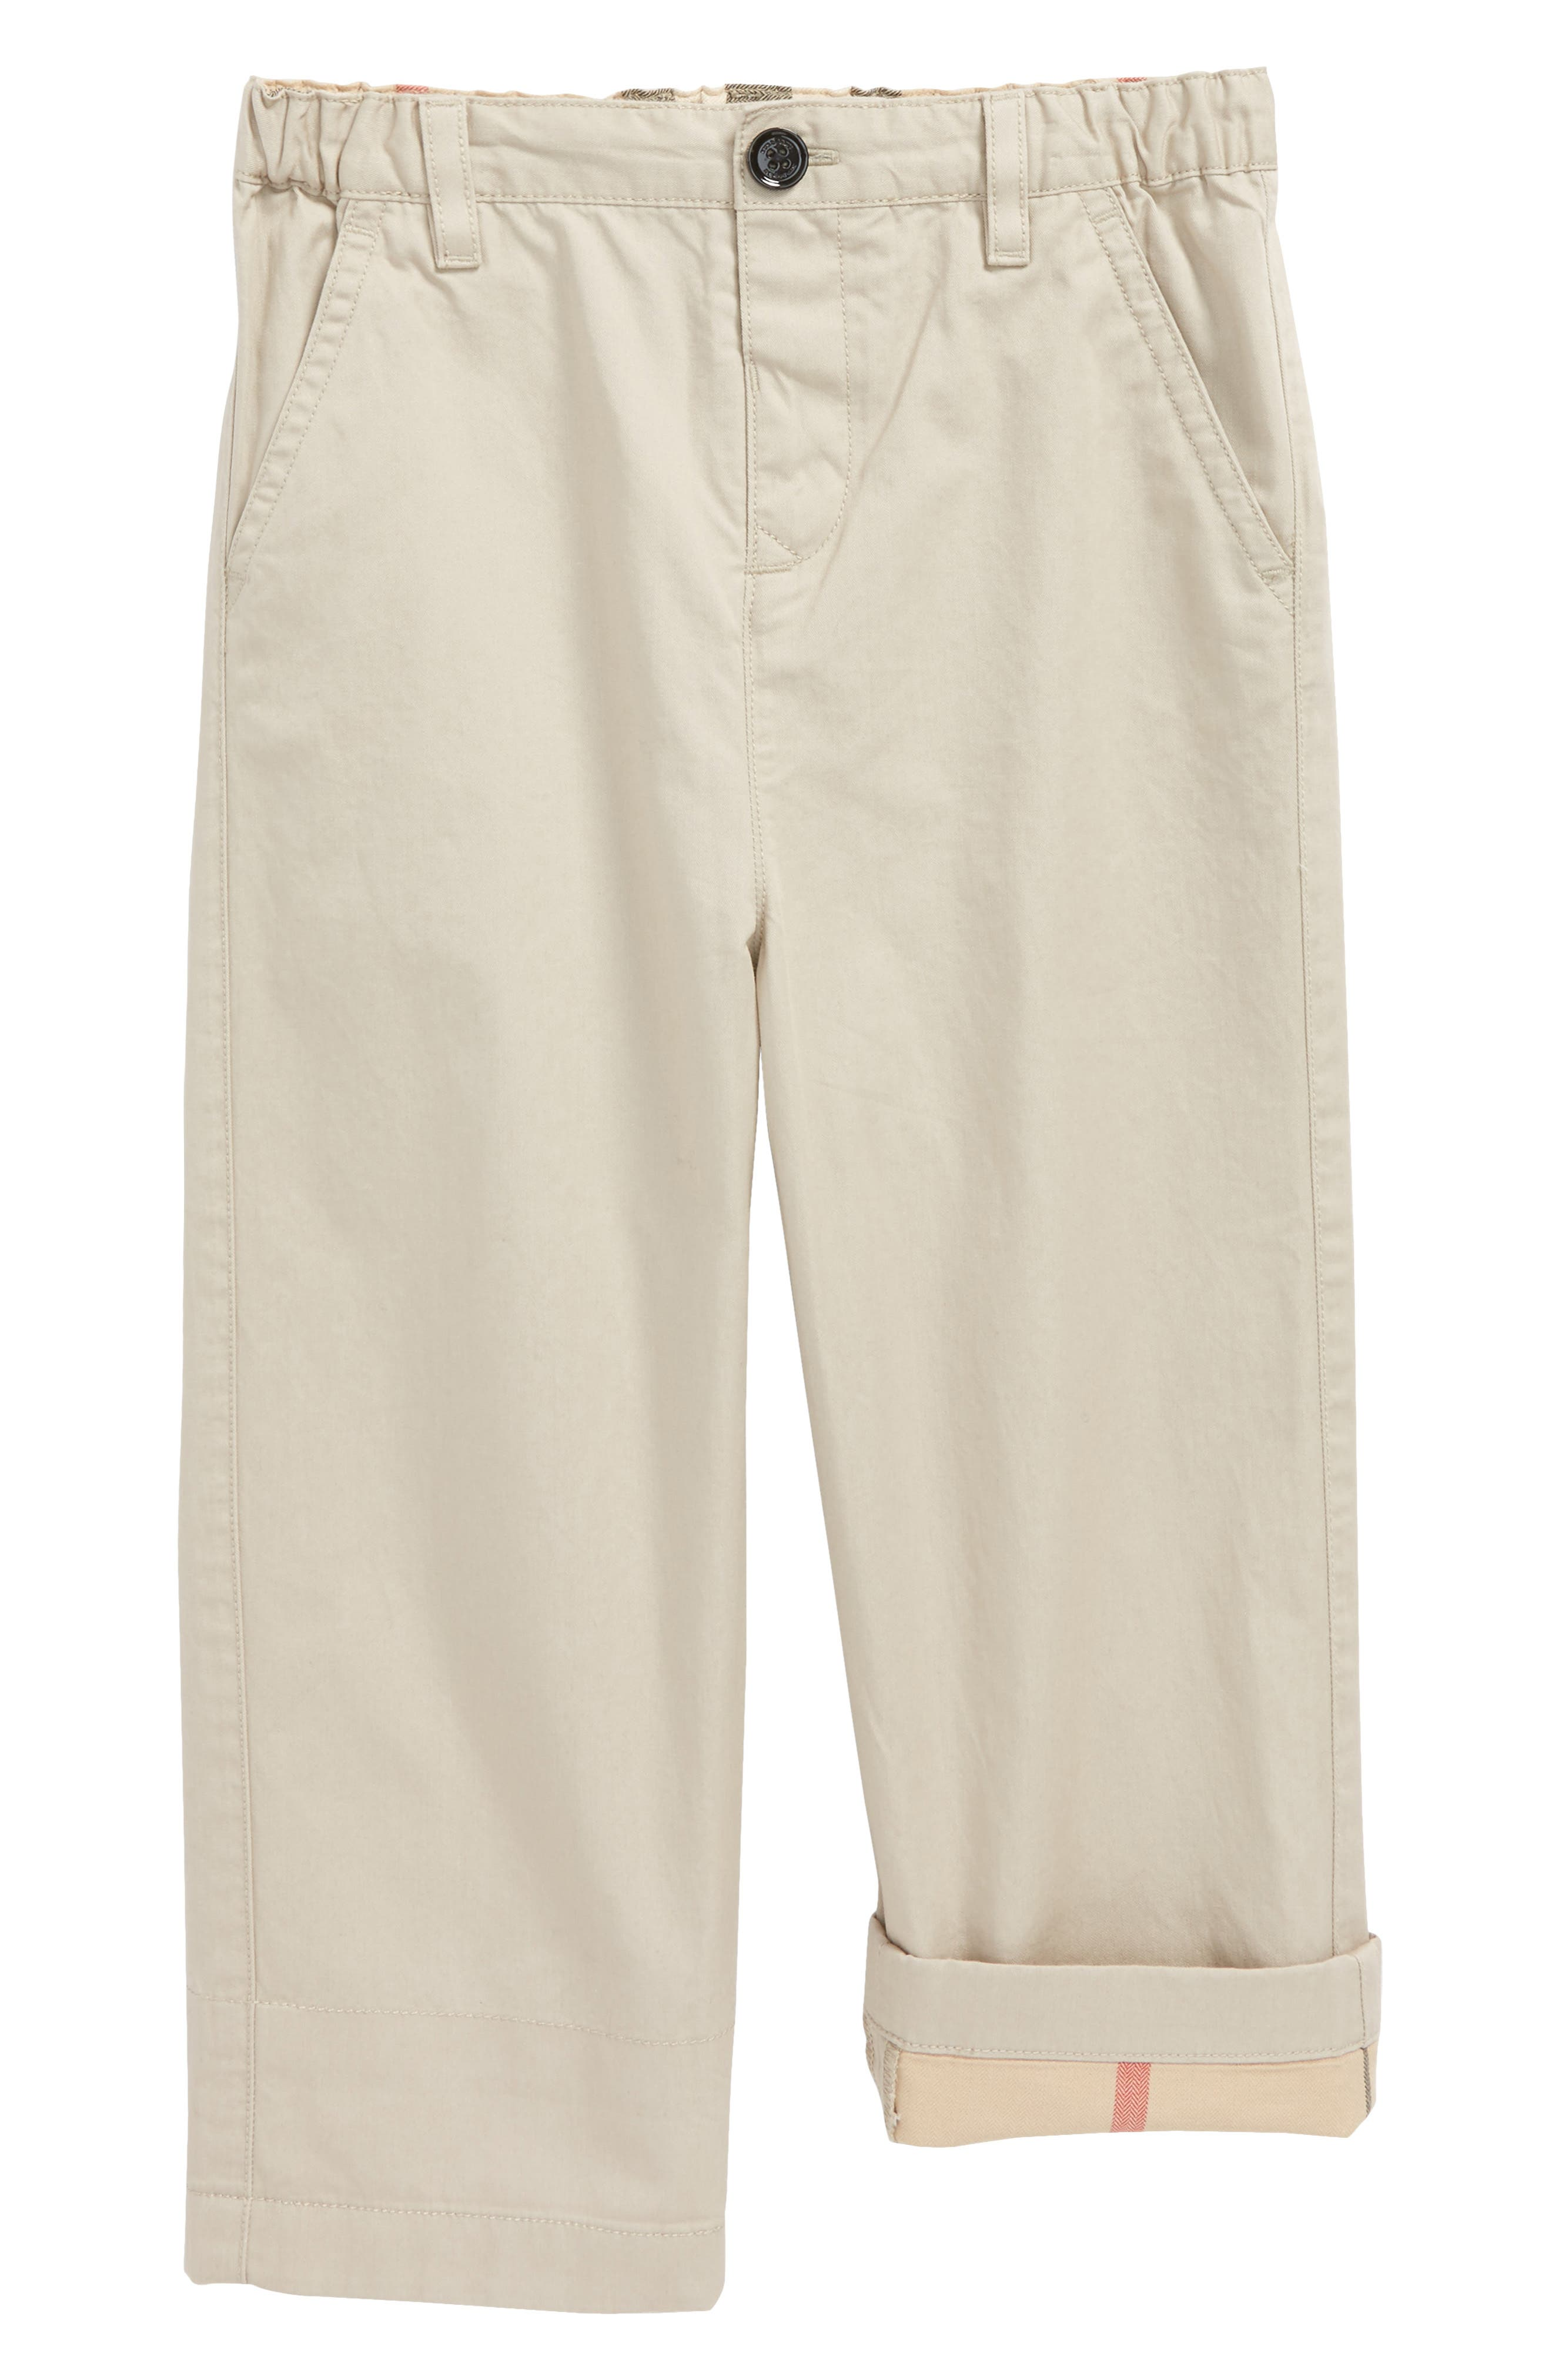 Ricky Check Lined Pants,                         Main,                         color, GREY STONE